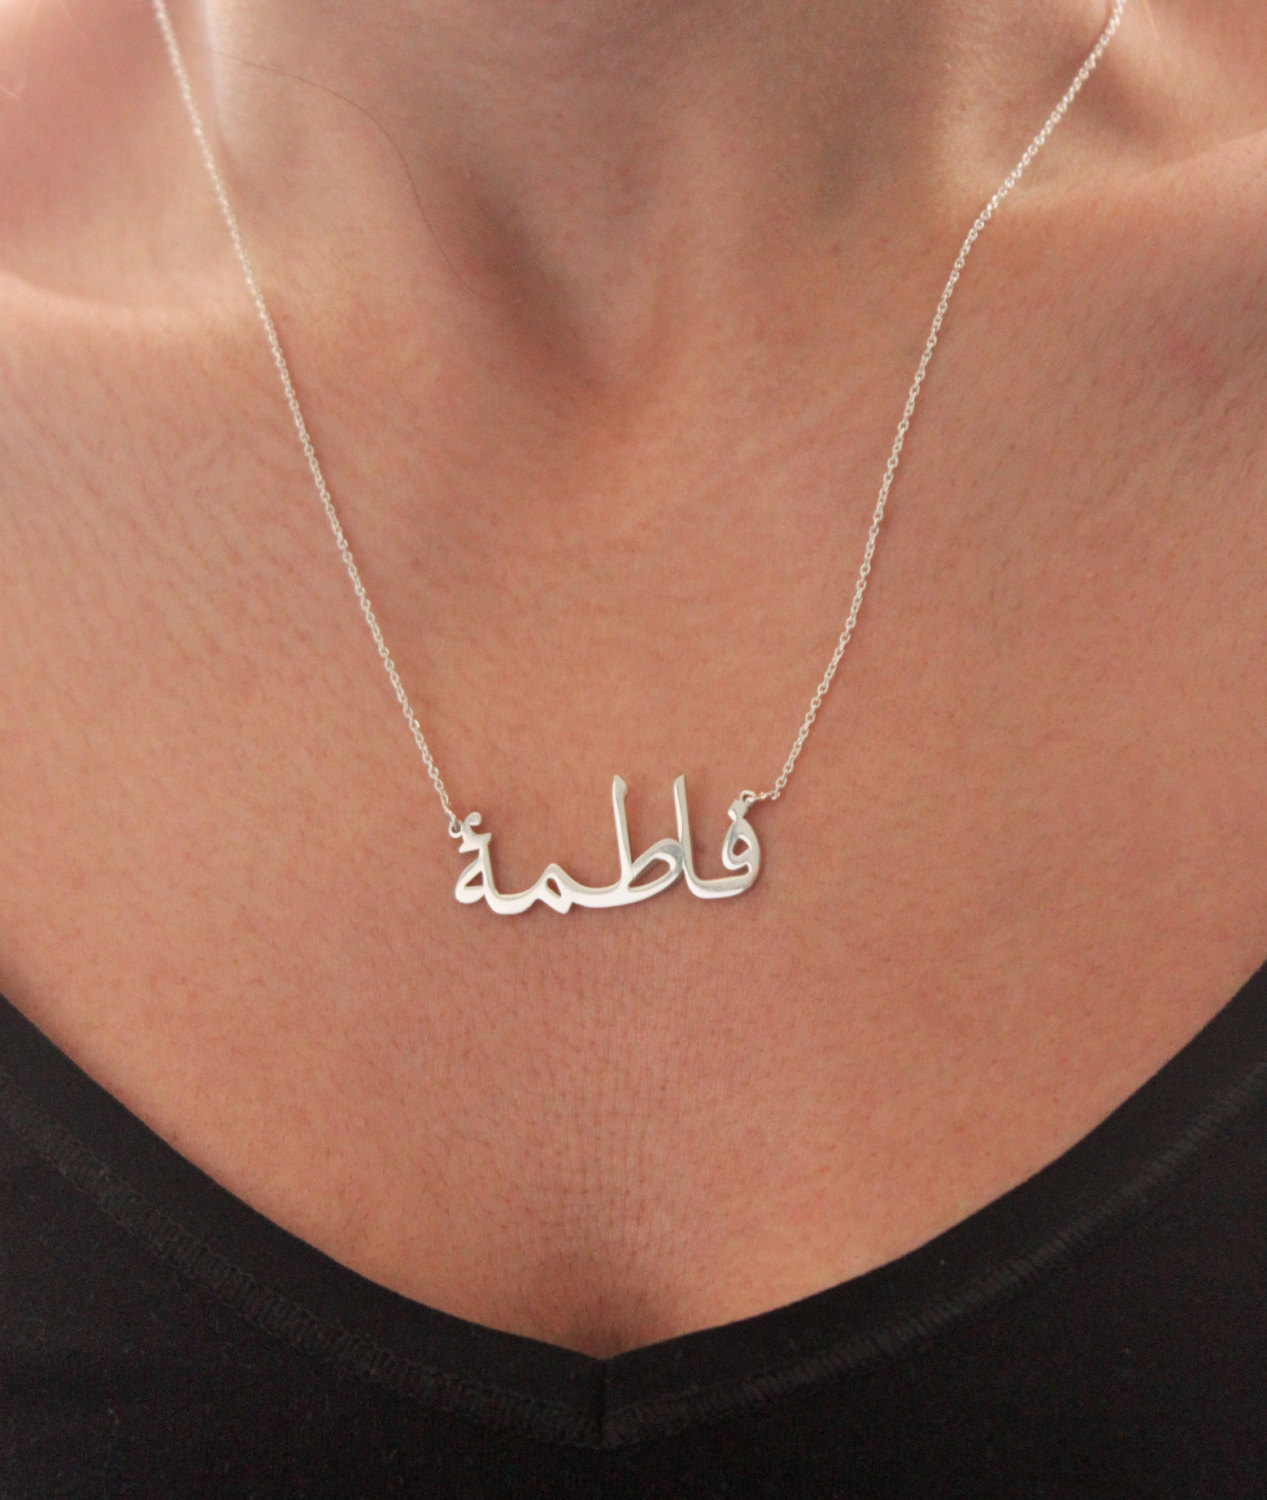 d114a1b771fbb Arabic Jewelry,arabic Necklace,gold Arabic Necklace,arabic Name  Necklace,gold Plated Necklace,personalize Necklace,handmade Necklace